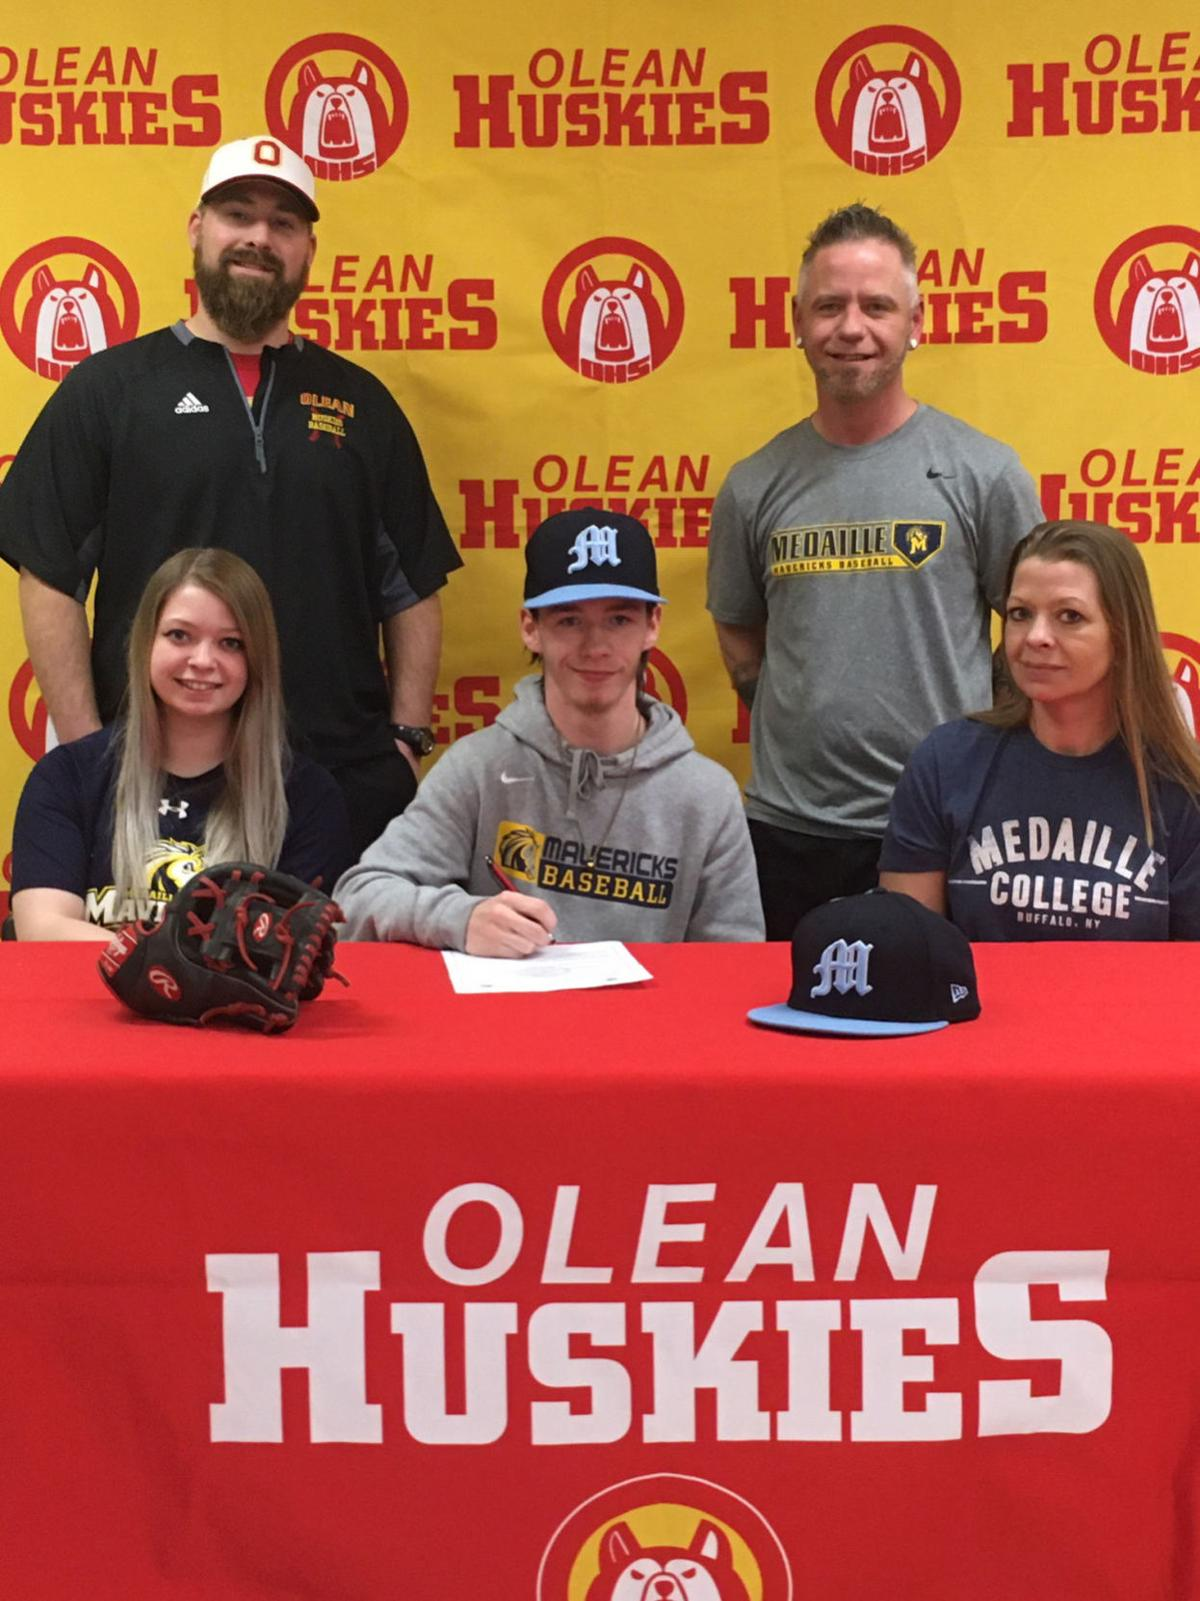 Olean's LaRue signs with Medaille baseball